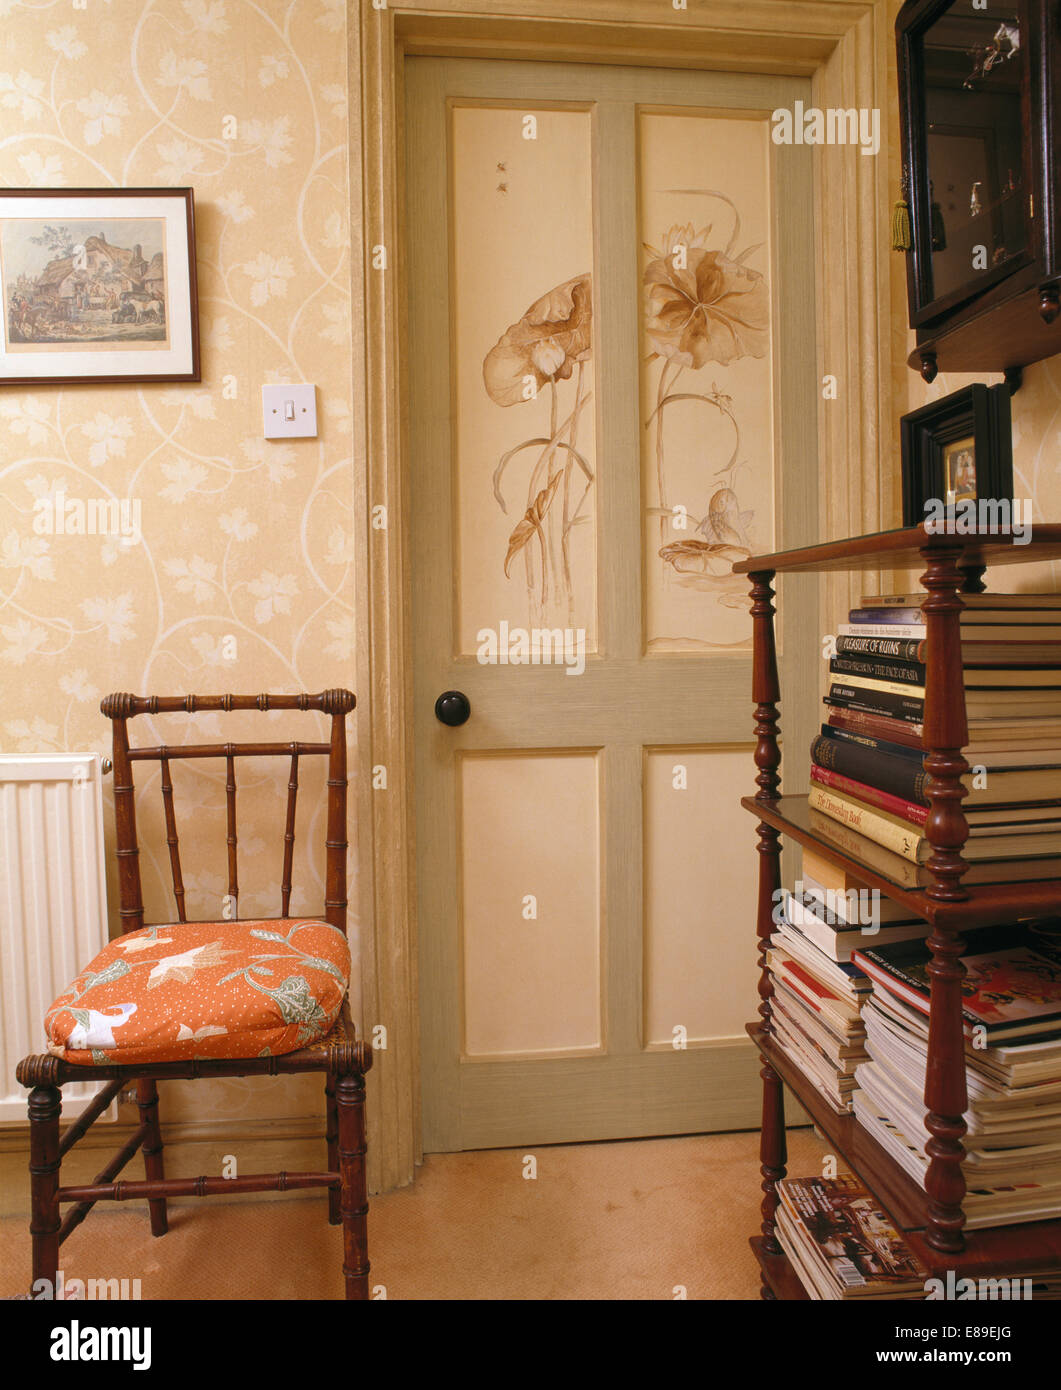 Old Wooden Chair And Antique Book Shelves On Landing With Hand Painted  Floral Decoration And Painted Door